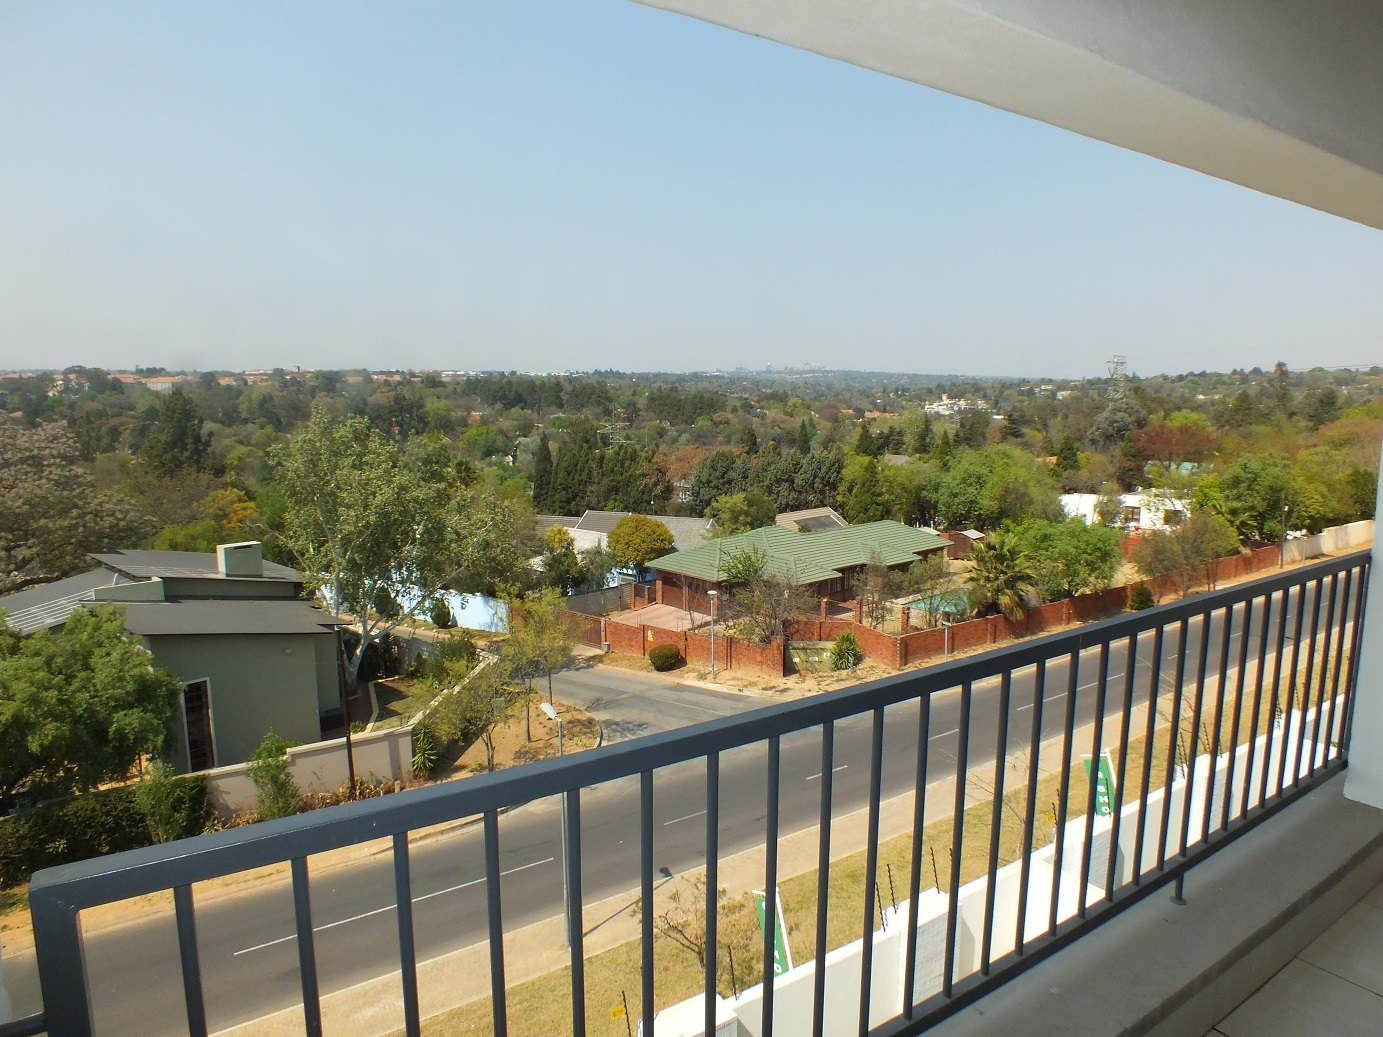 1 Bedroom Apartment for sale in Bryanston ENT0067747 : photo#7